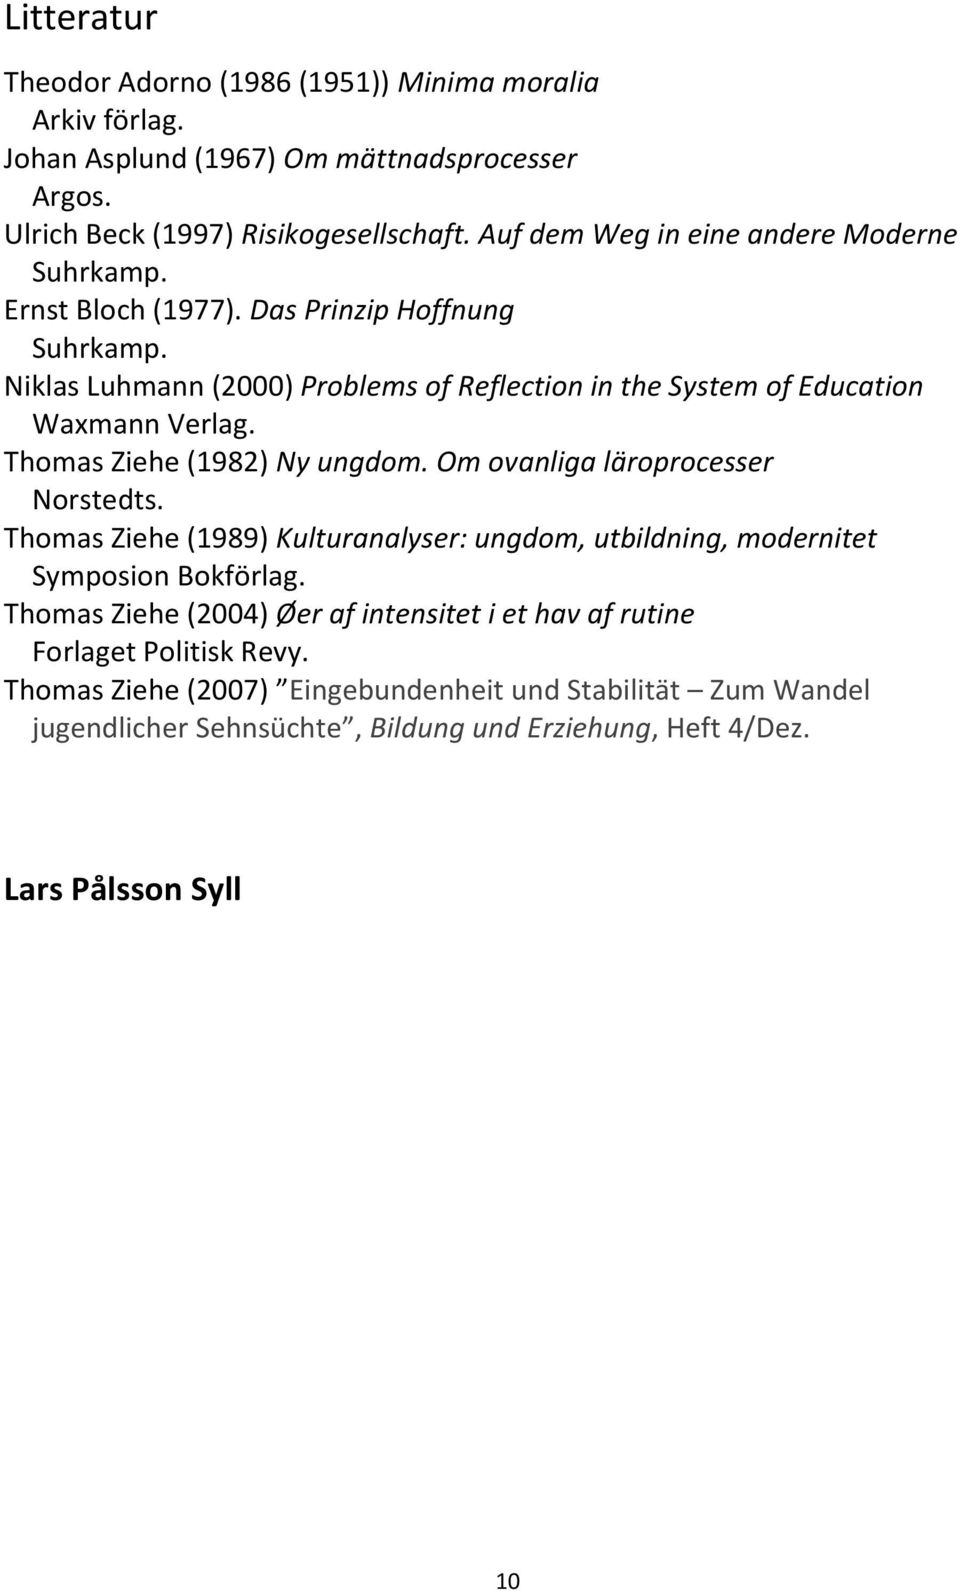 Niklas Luhmann (2000) Problems of Reflection in the System of Education Waxmann Verlag. Thomas Ziehe (1982) Ny ungdom. Om ovanliga läroprocesser Norstedts.